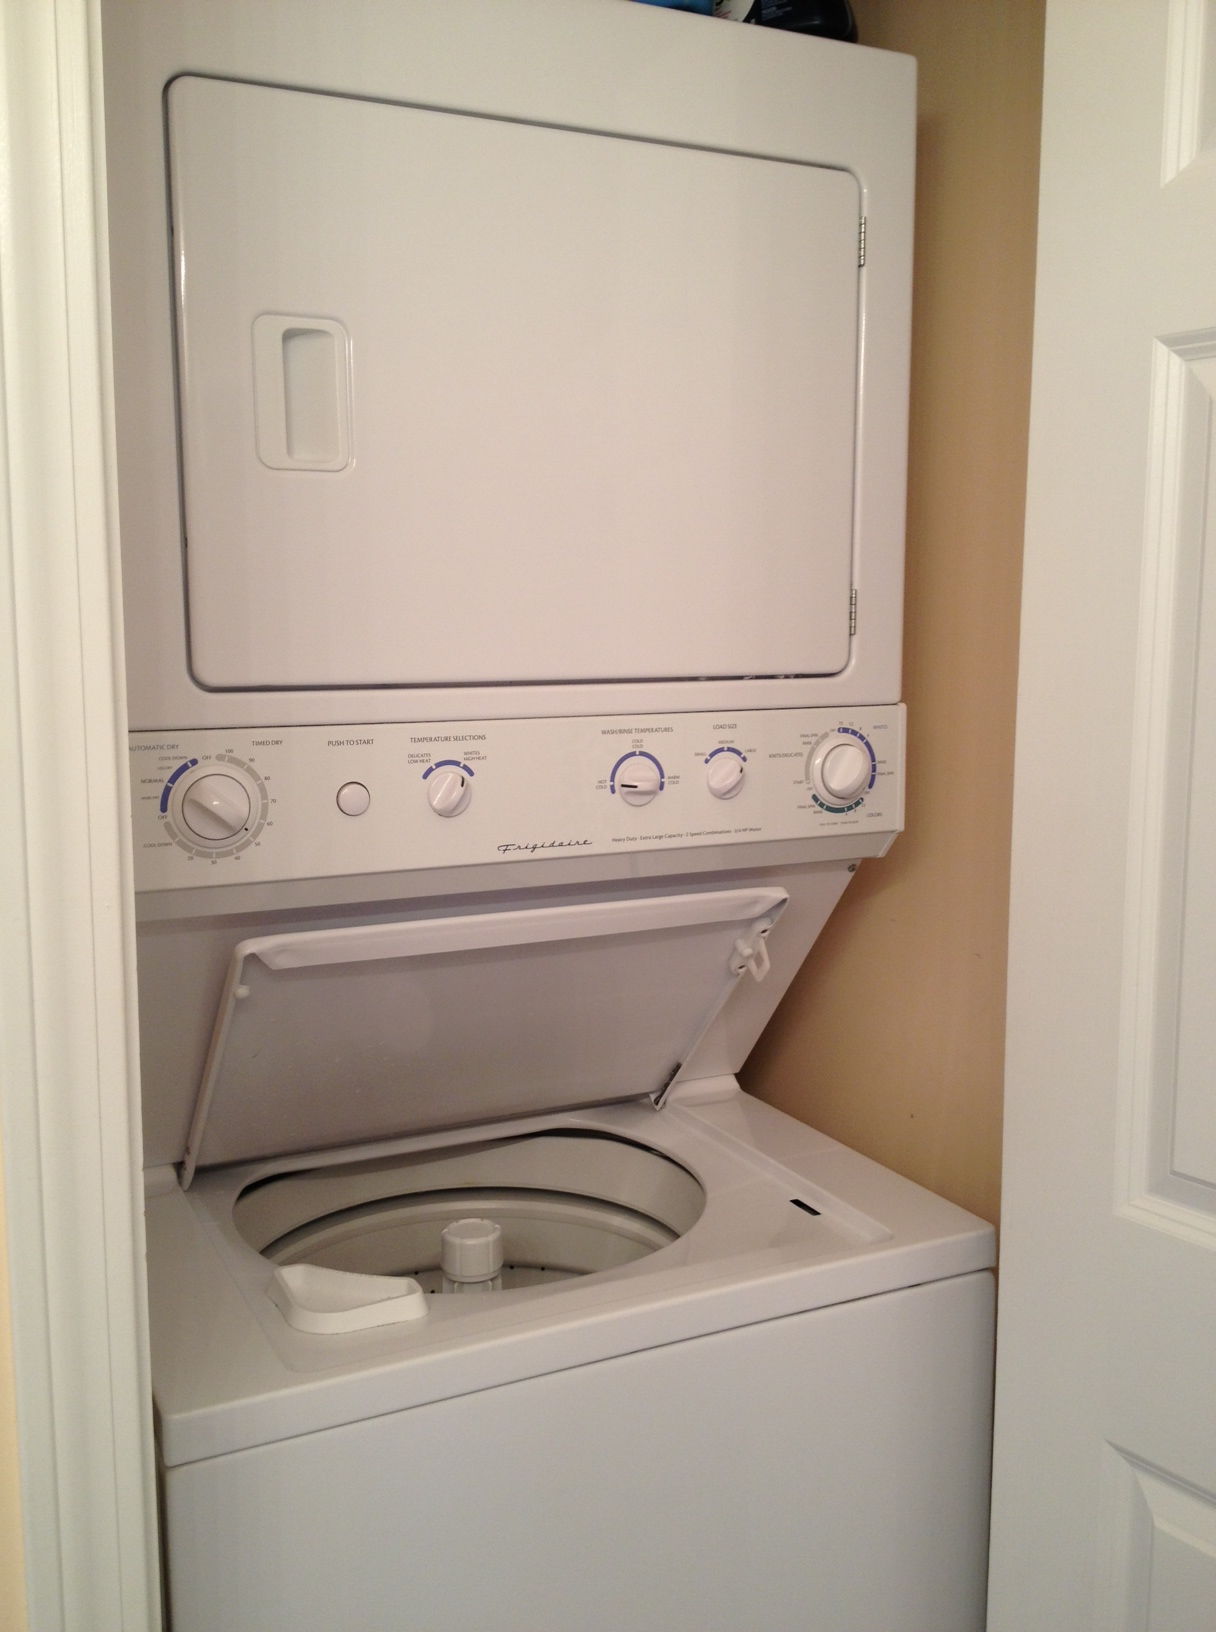 Washer Dryer Combo For Apartments - Interior Design